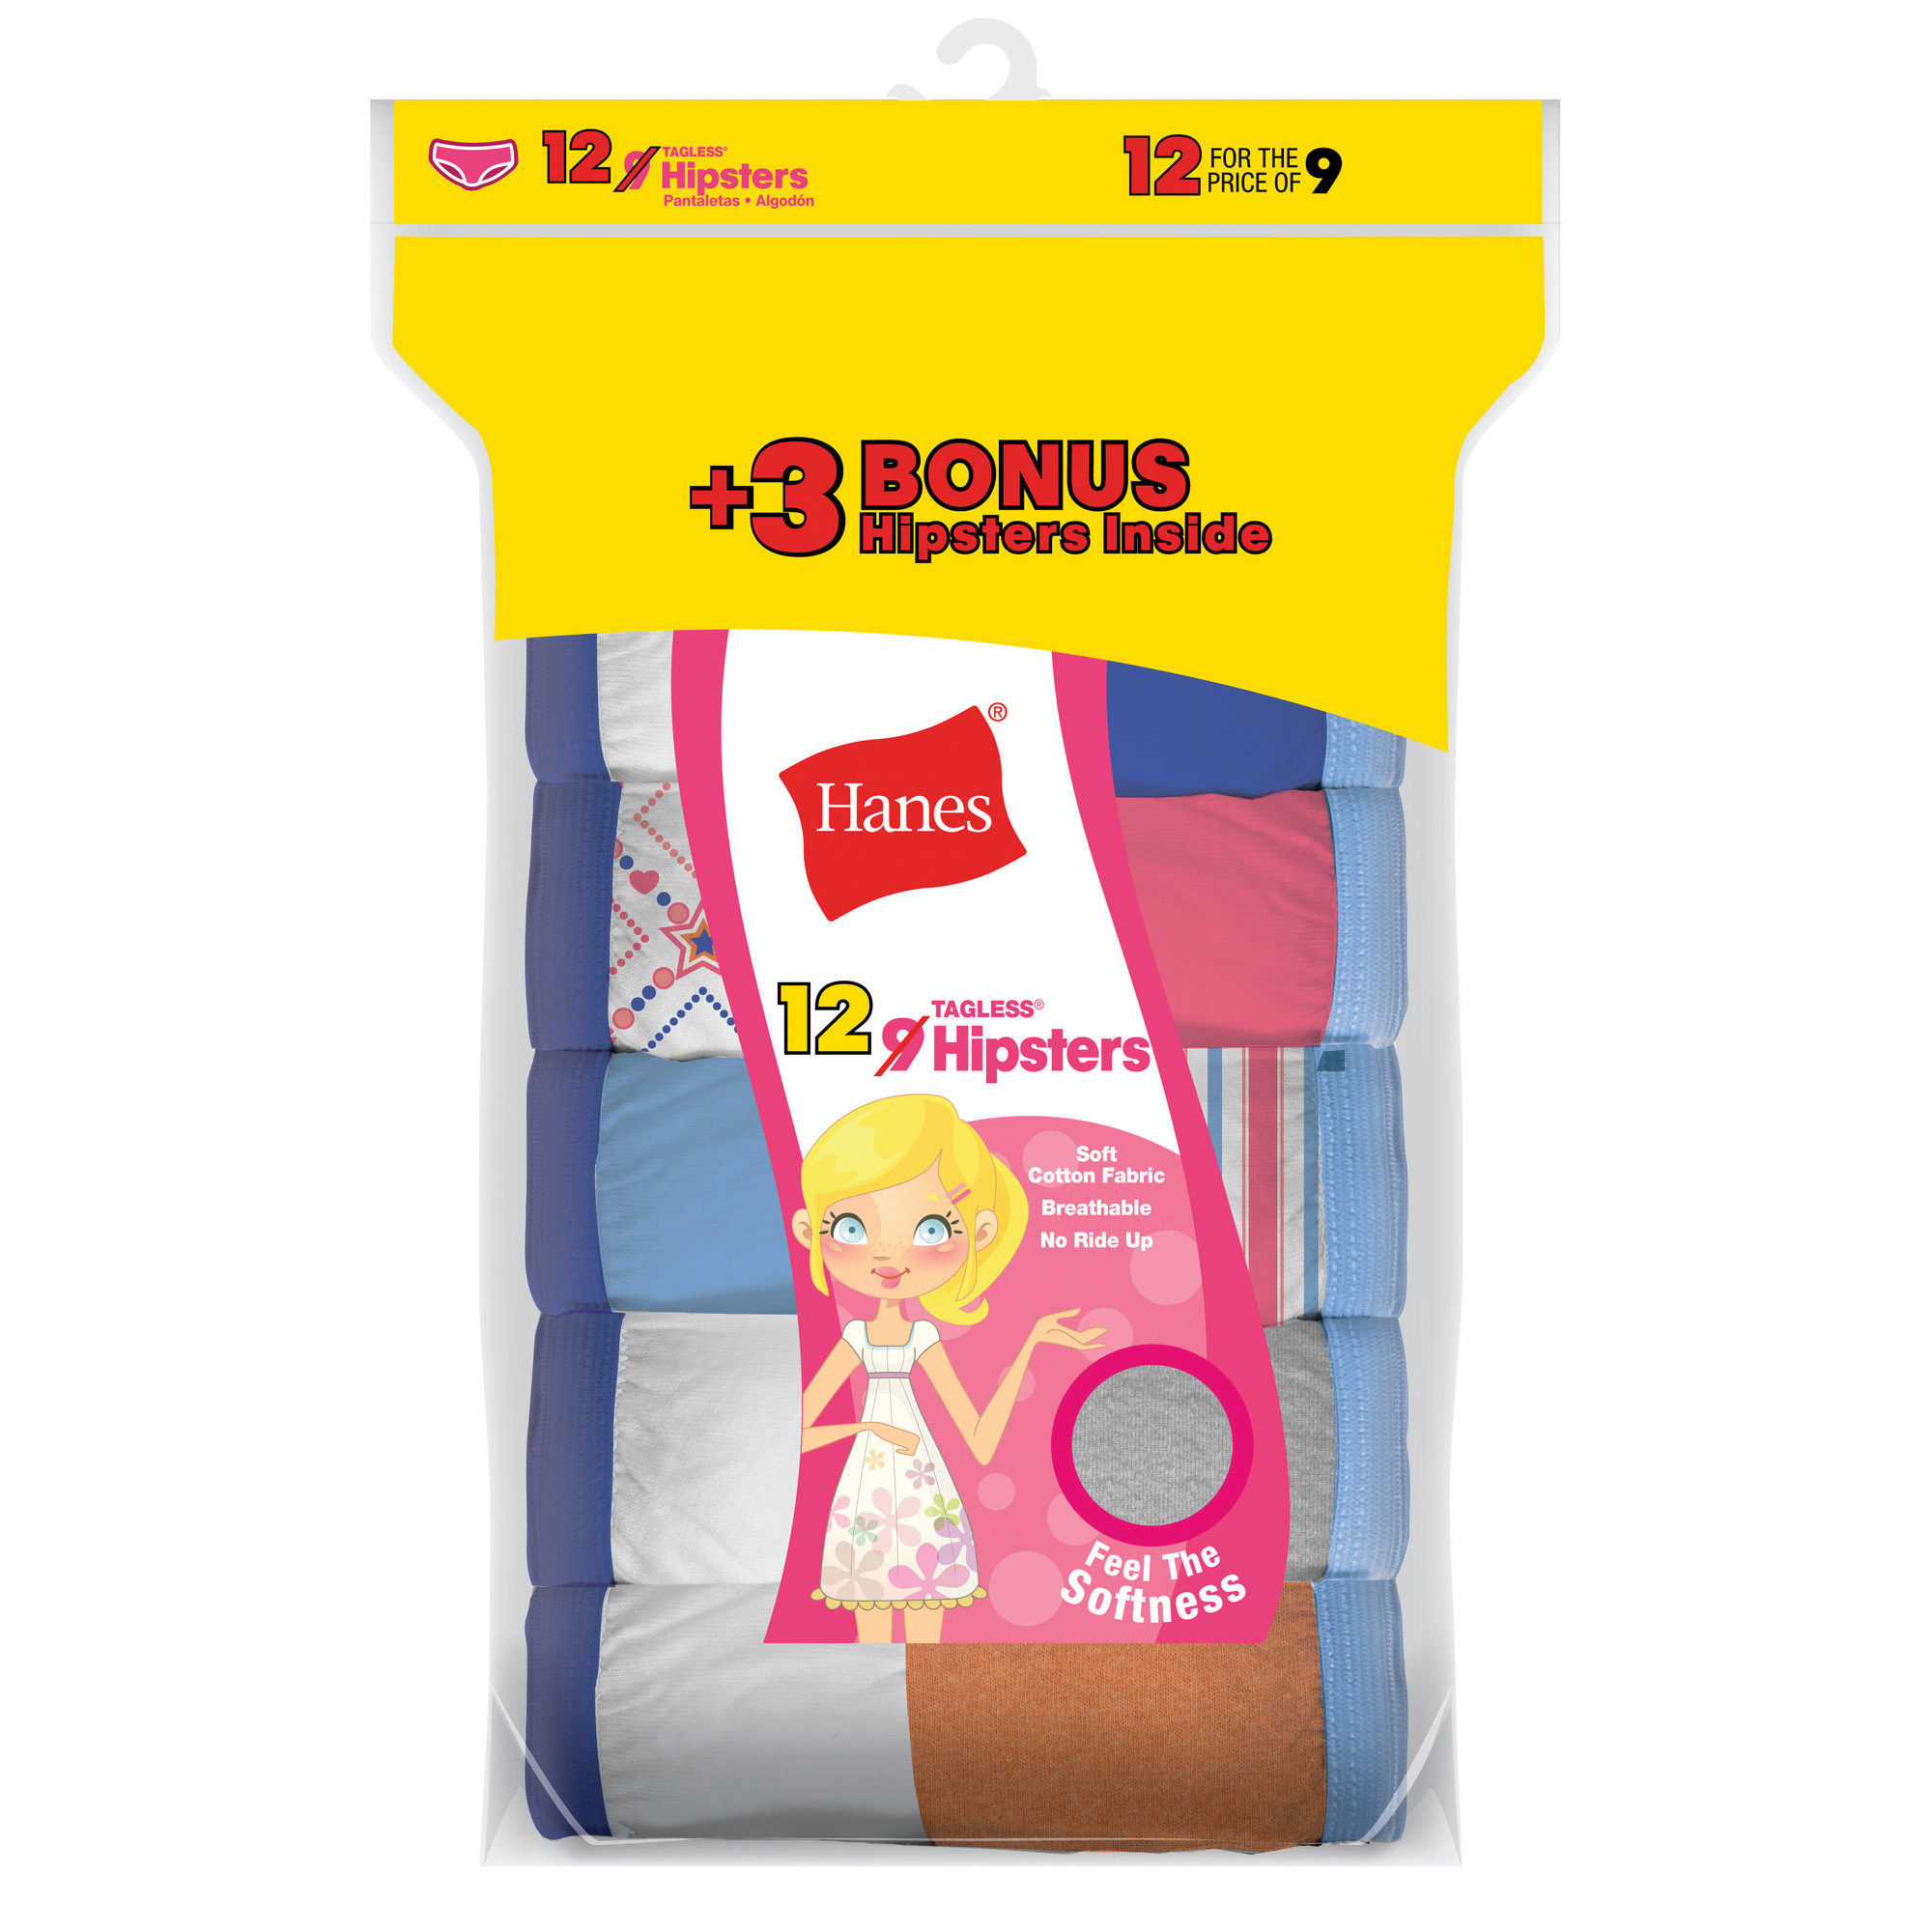 Hanes Girl's Cotton Hipster 9 Pack + 3 Free